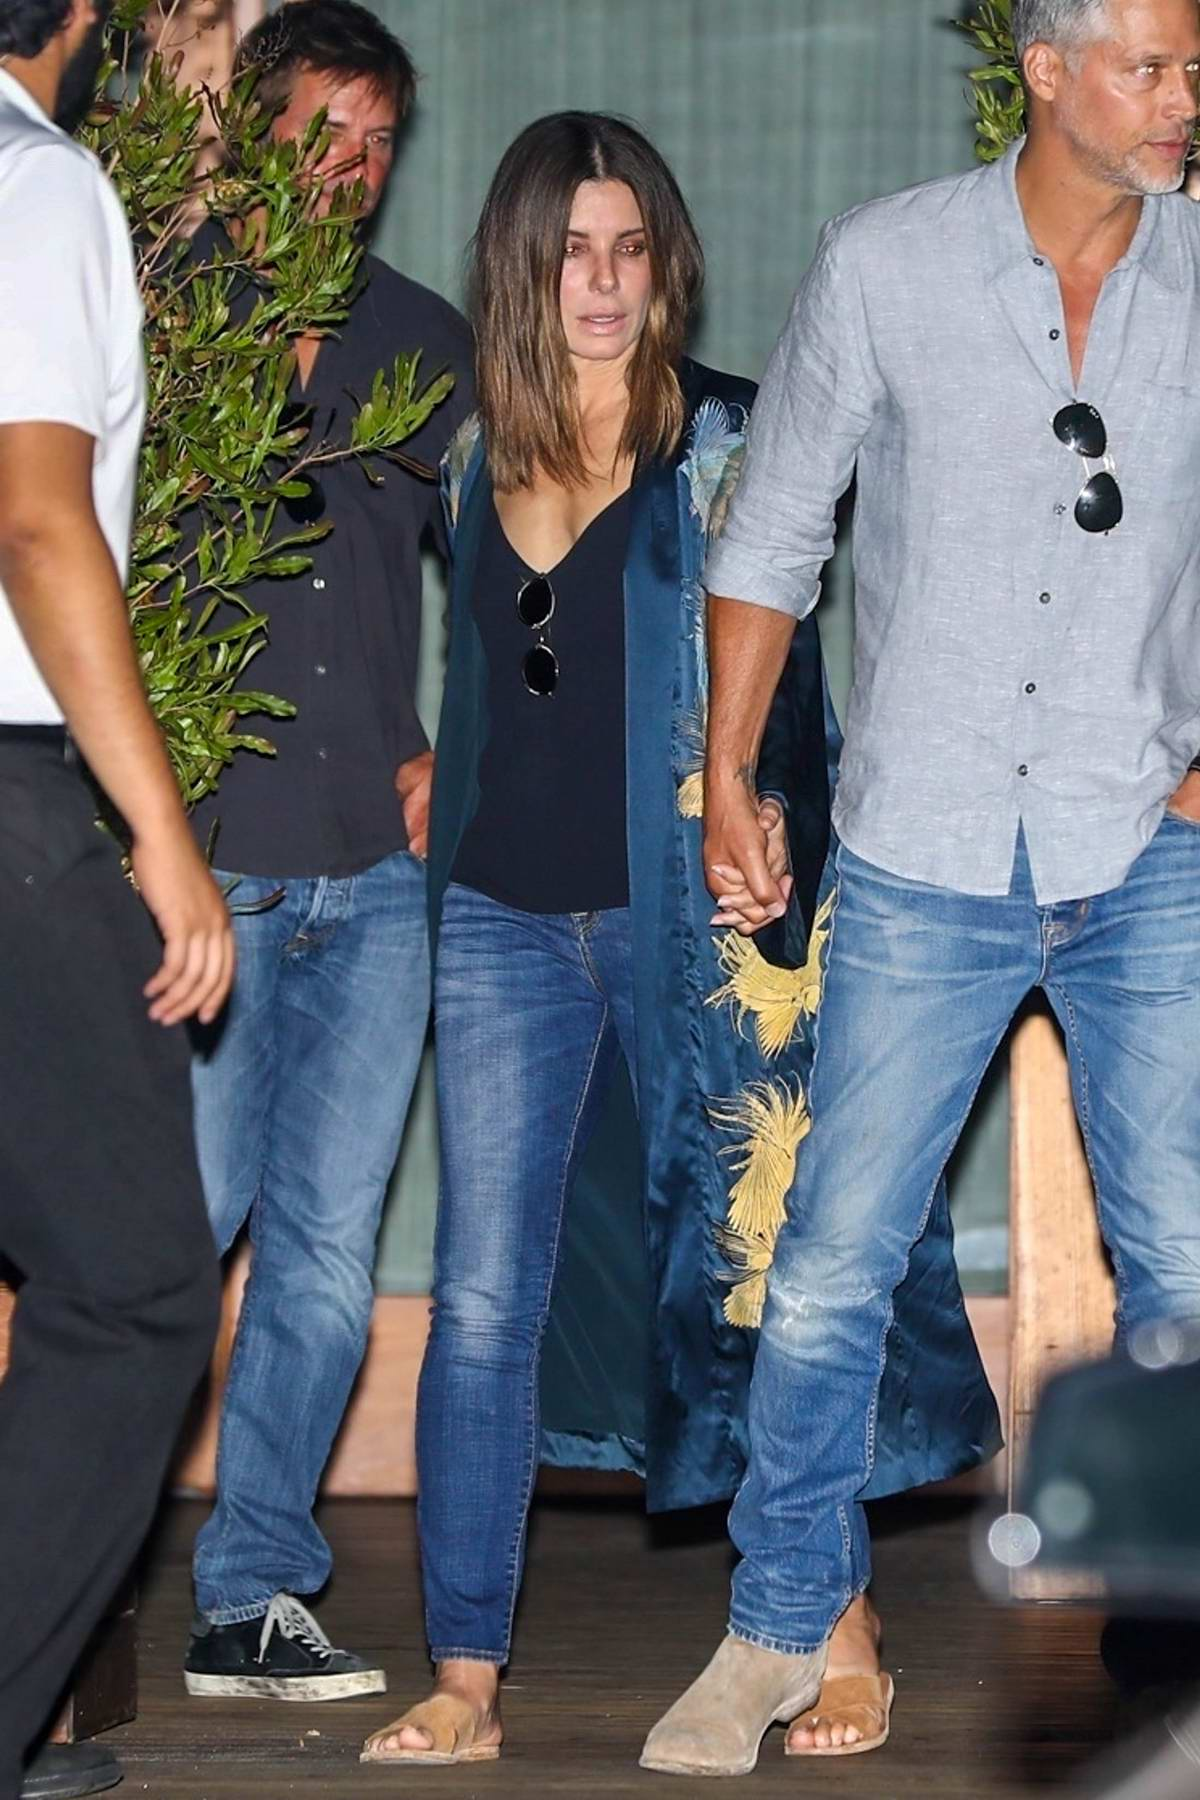 Sandra Bullock and boyfriend Bryan randall spotted leaving the Soho House during a night out in West Hollywood, Los Angeles